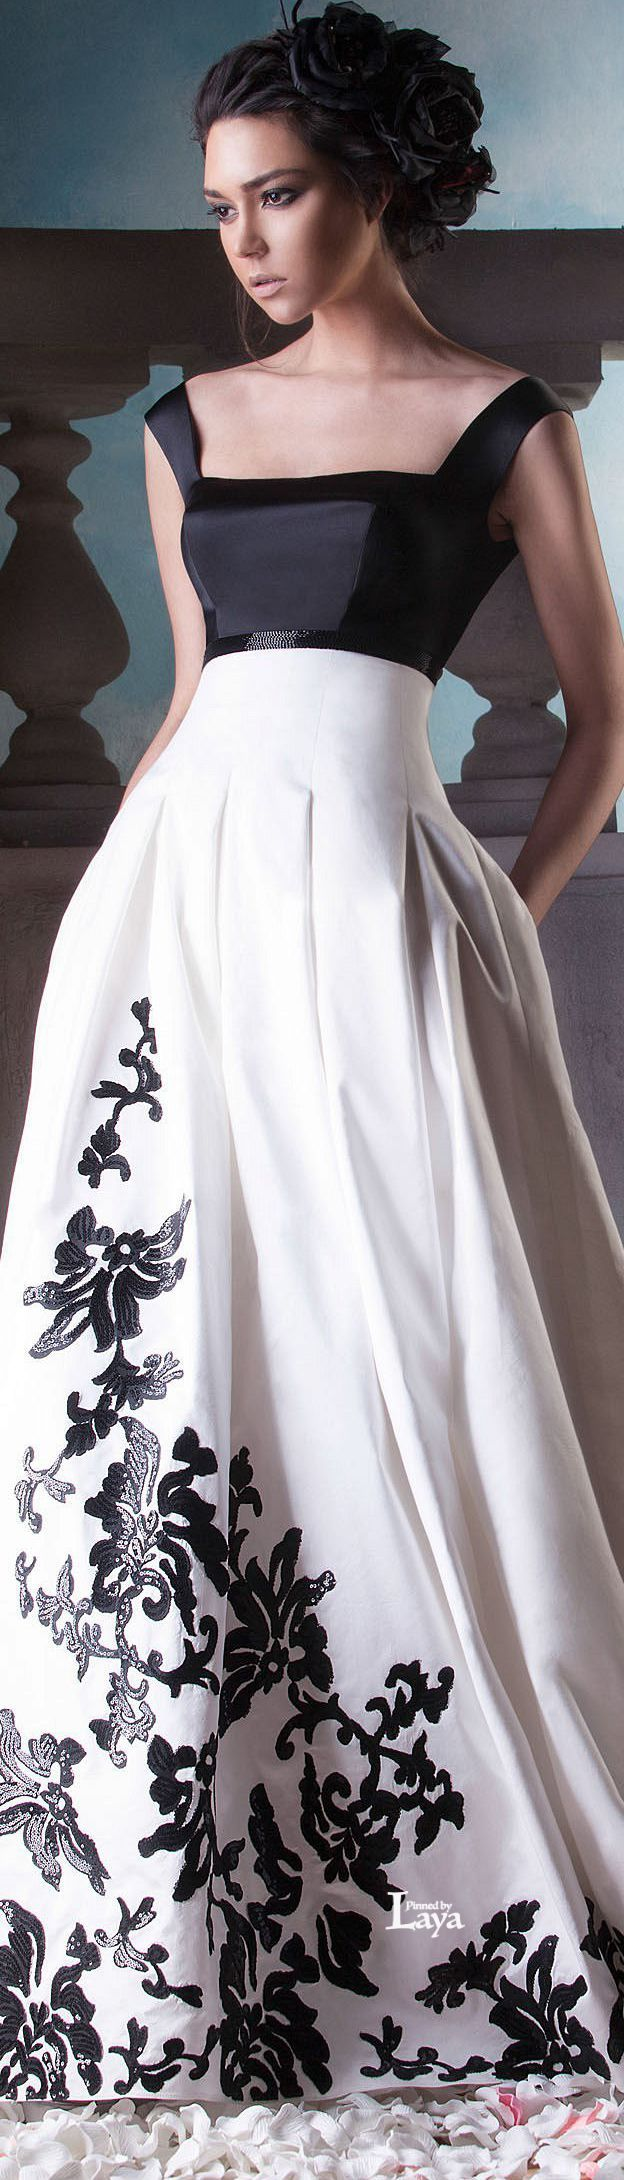 Black And White Evening Dress | You can find this at => http ...